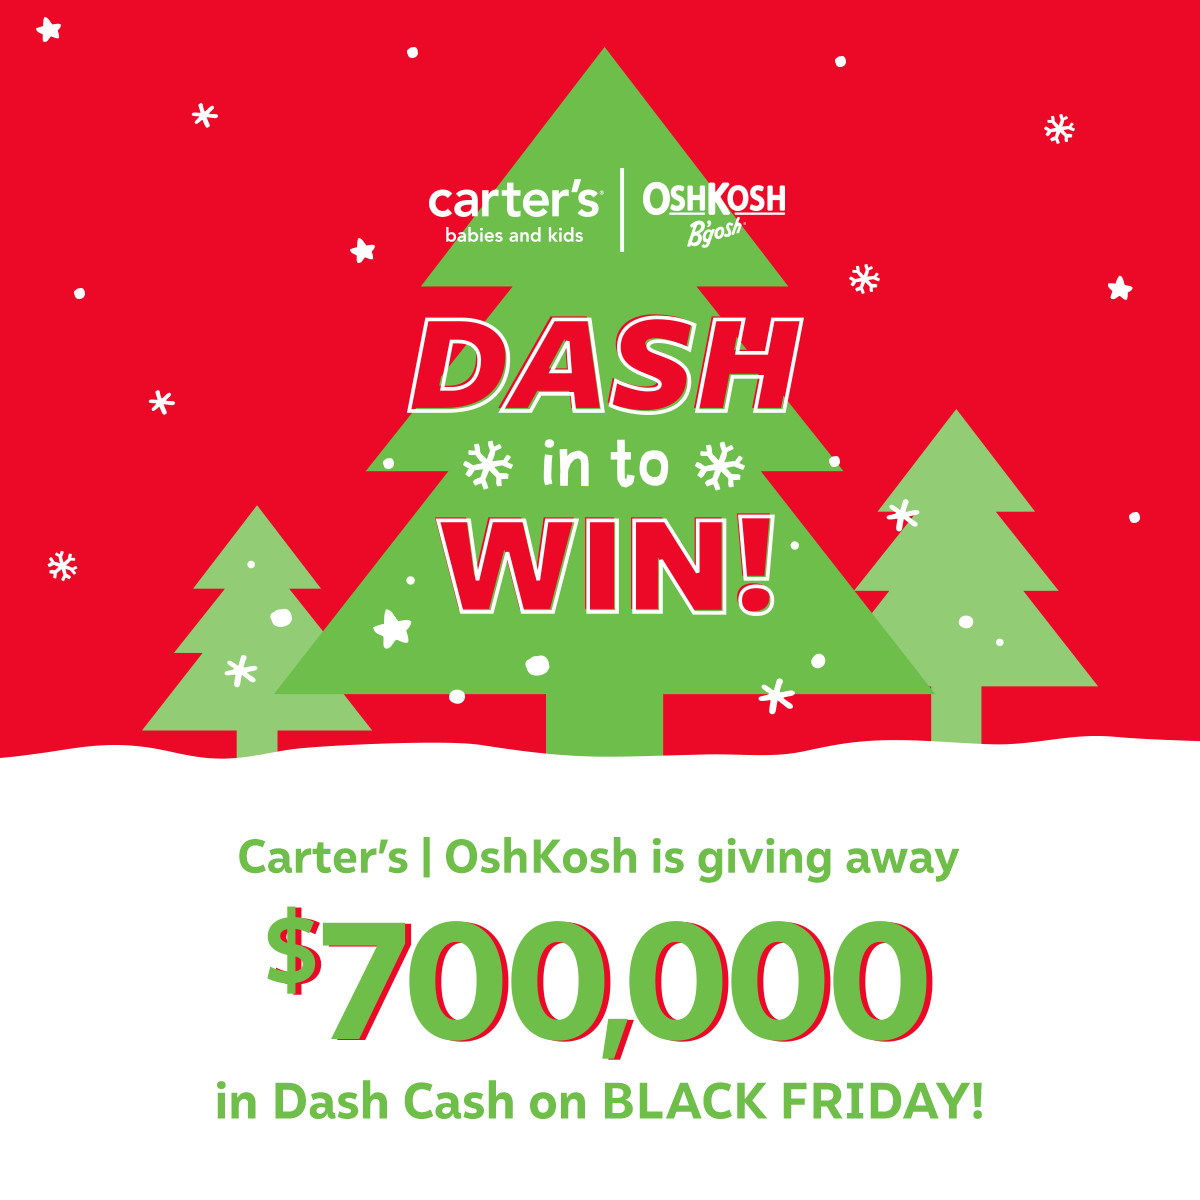 carters_1119_bloggerdisplay_dashintowin.jpg